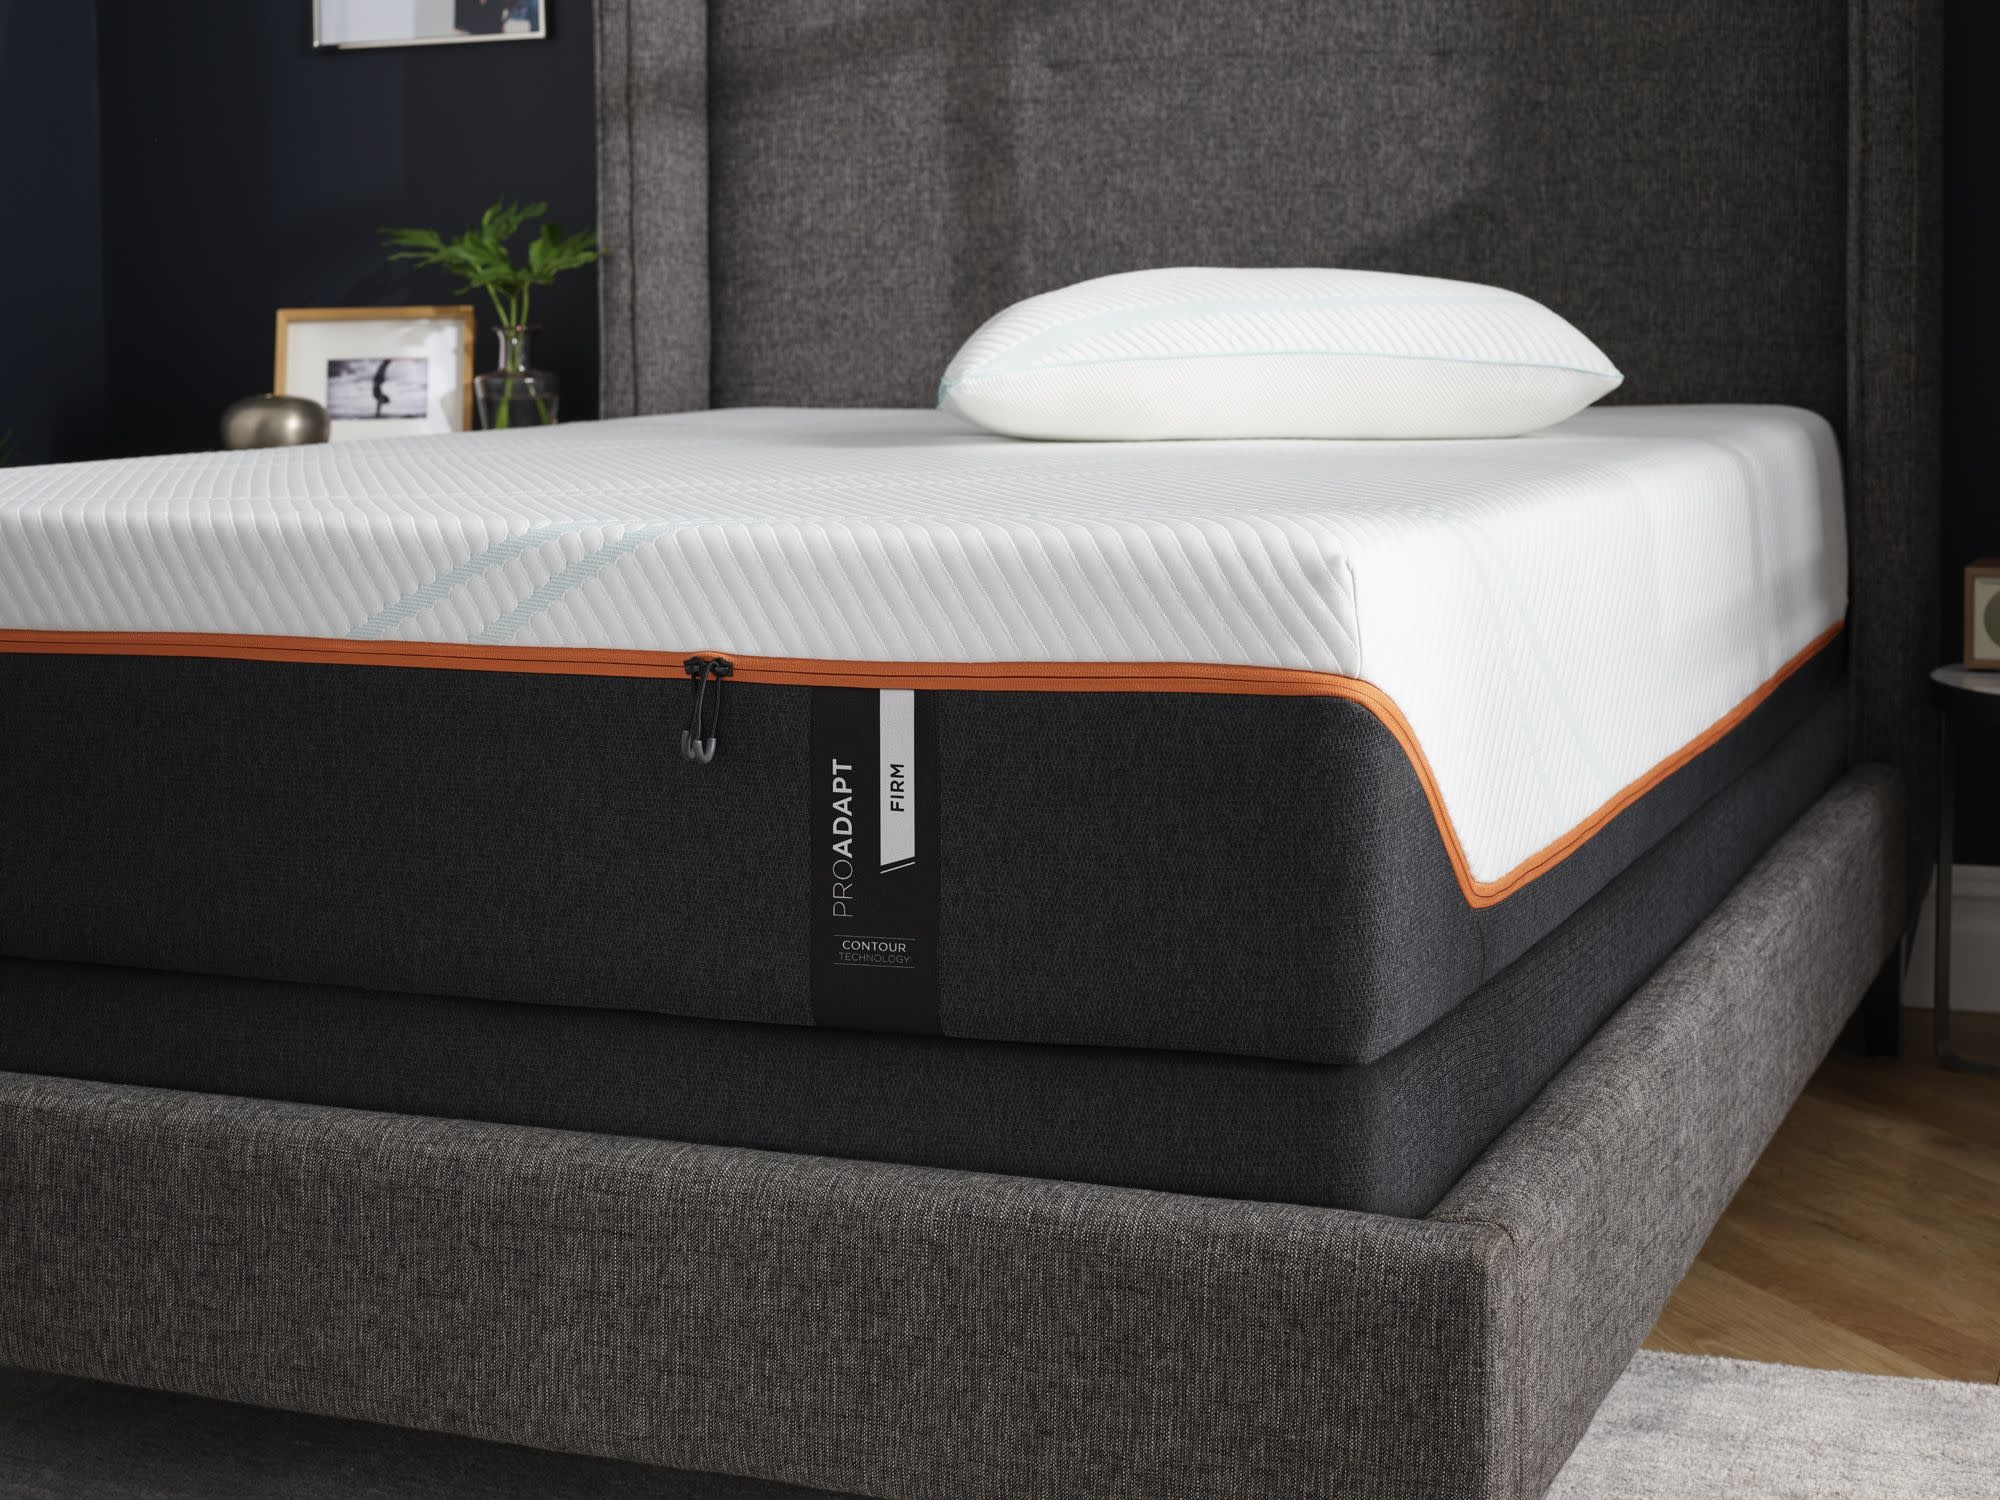 Tempur-Pedic Tempur-Pedic Pro Adapt Firm Mattress